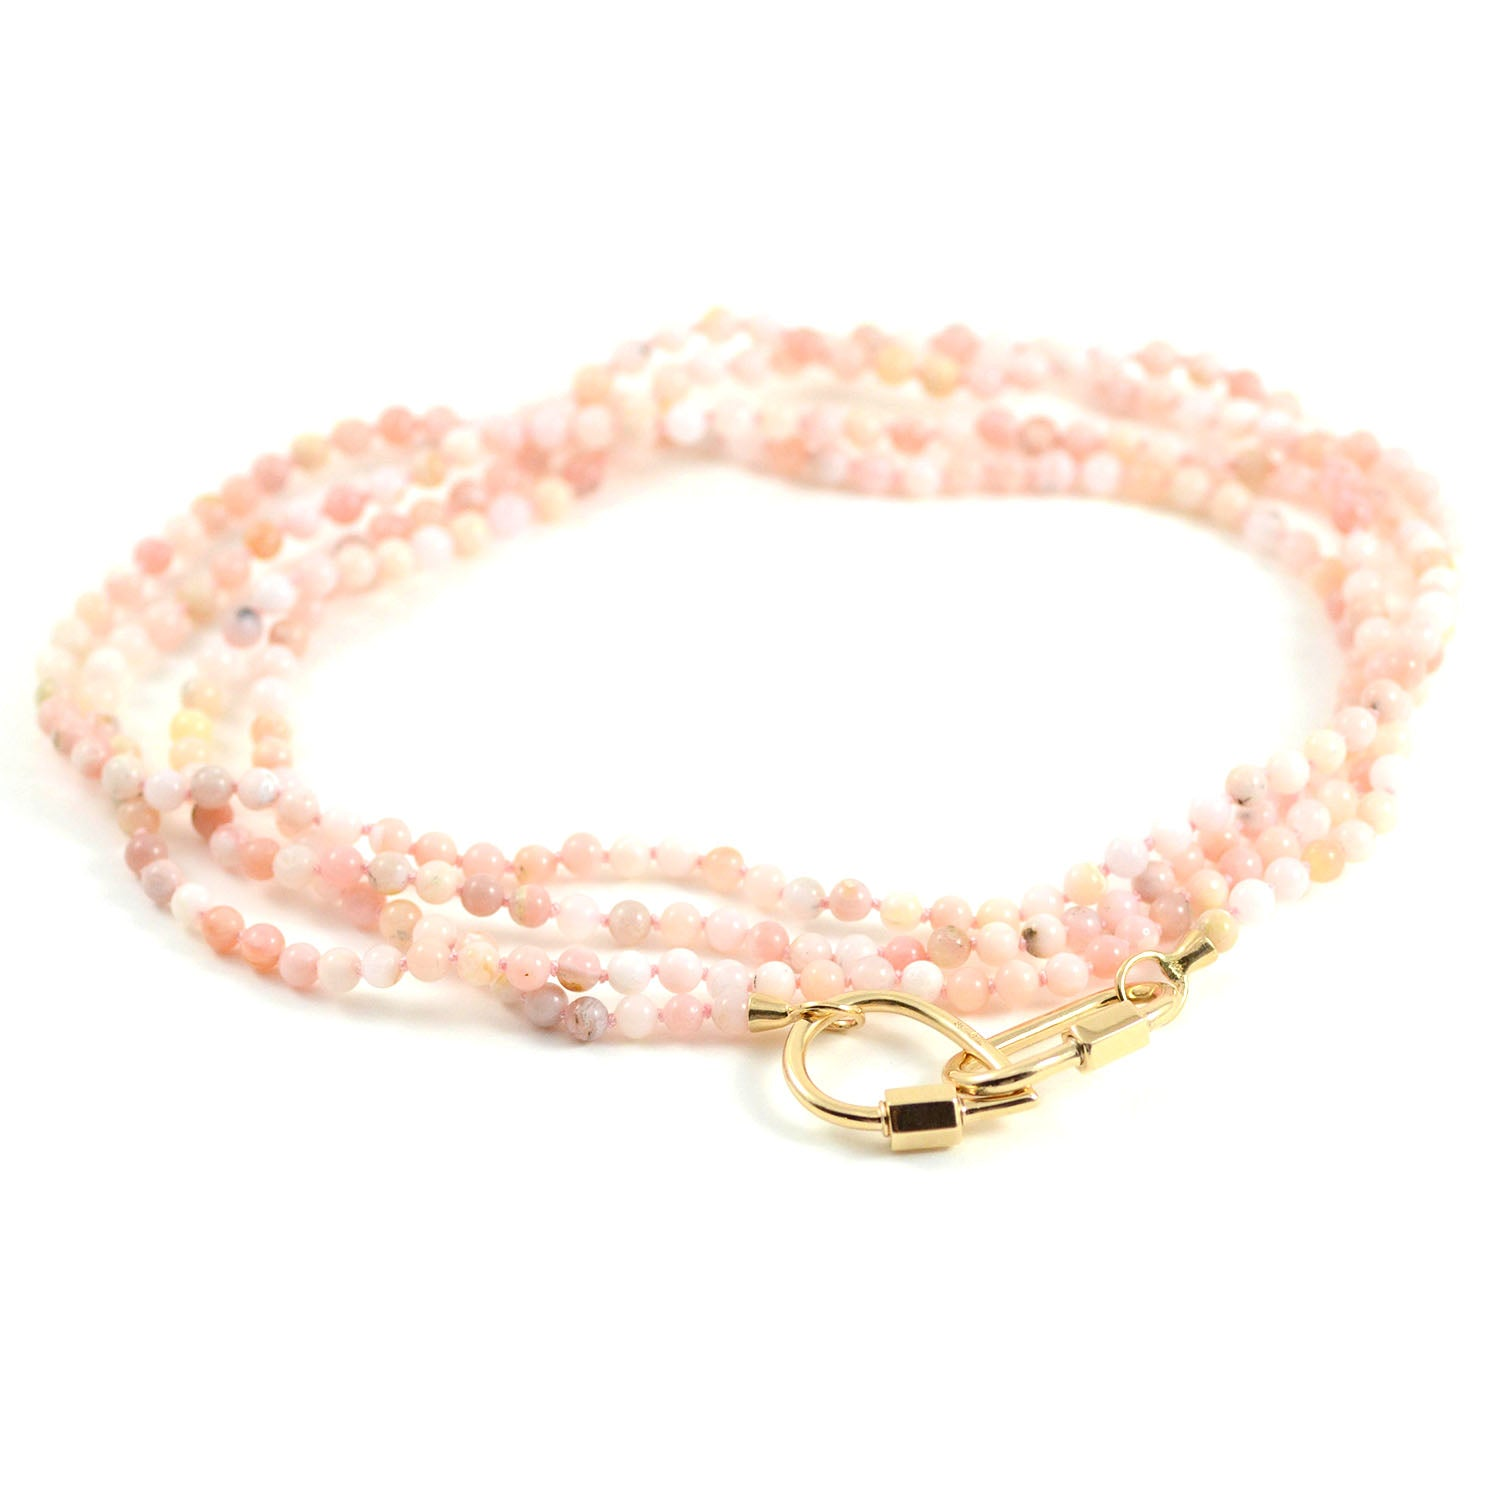 Marla Aaron Necklace Pink Opal Beaded Yellow Gold End Loops